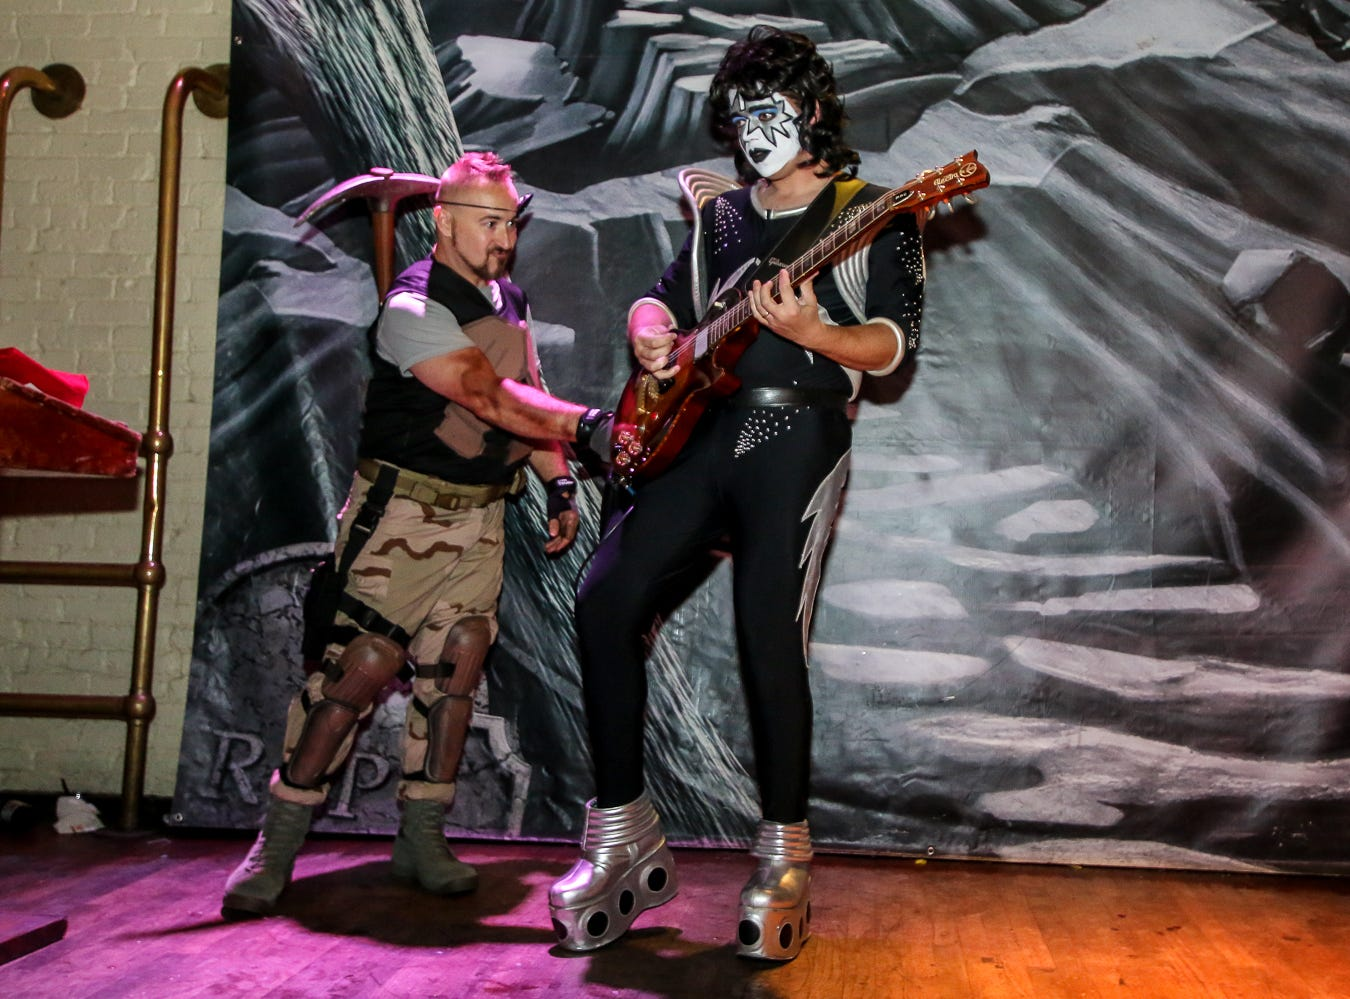 """Ace Frehley"" won 20th place in the $1,000 grand prize Halloween costume contest, which featured over 100 entrants, at Seville Quarter on Wednesday, October 31, 2018."